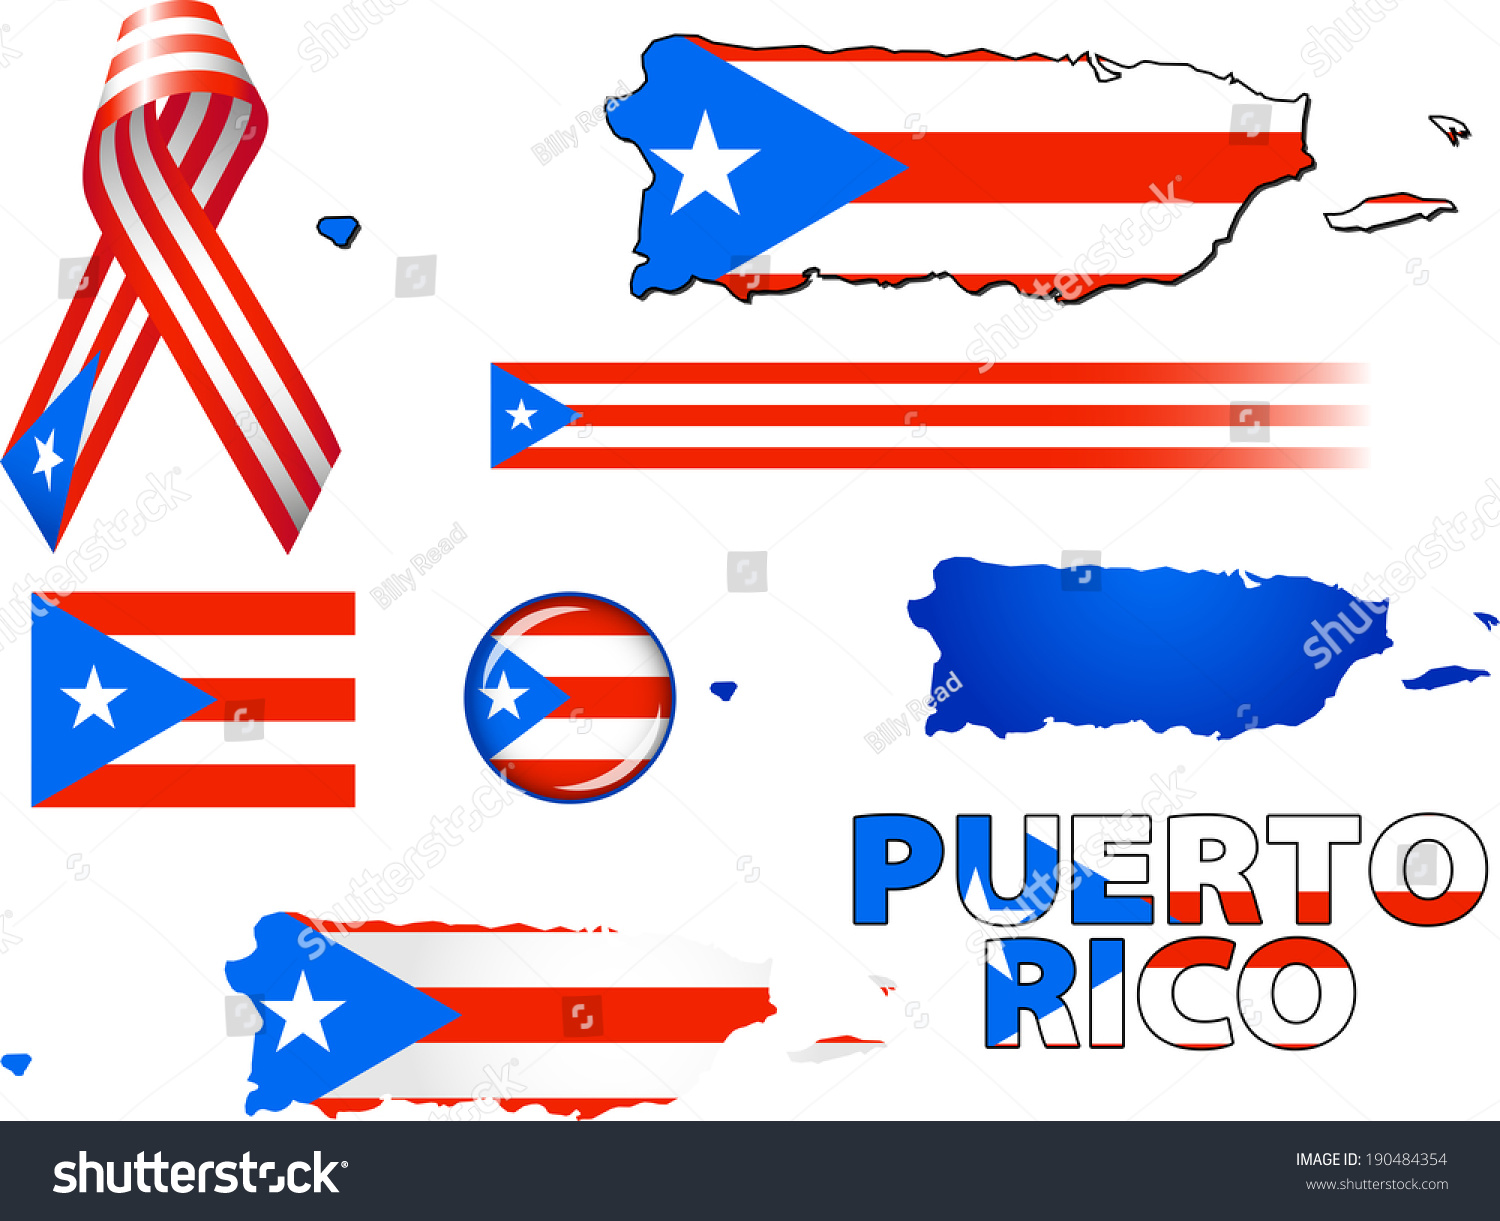 Puerto rico icons set vector graphic stock vector 190484354 puerto rico icons set of vector graphic icons and symbols representing puerto rico biocorpaavc Image collections